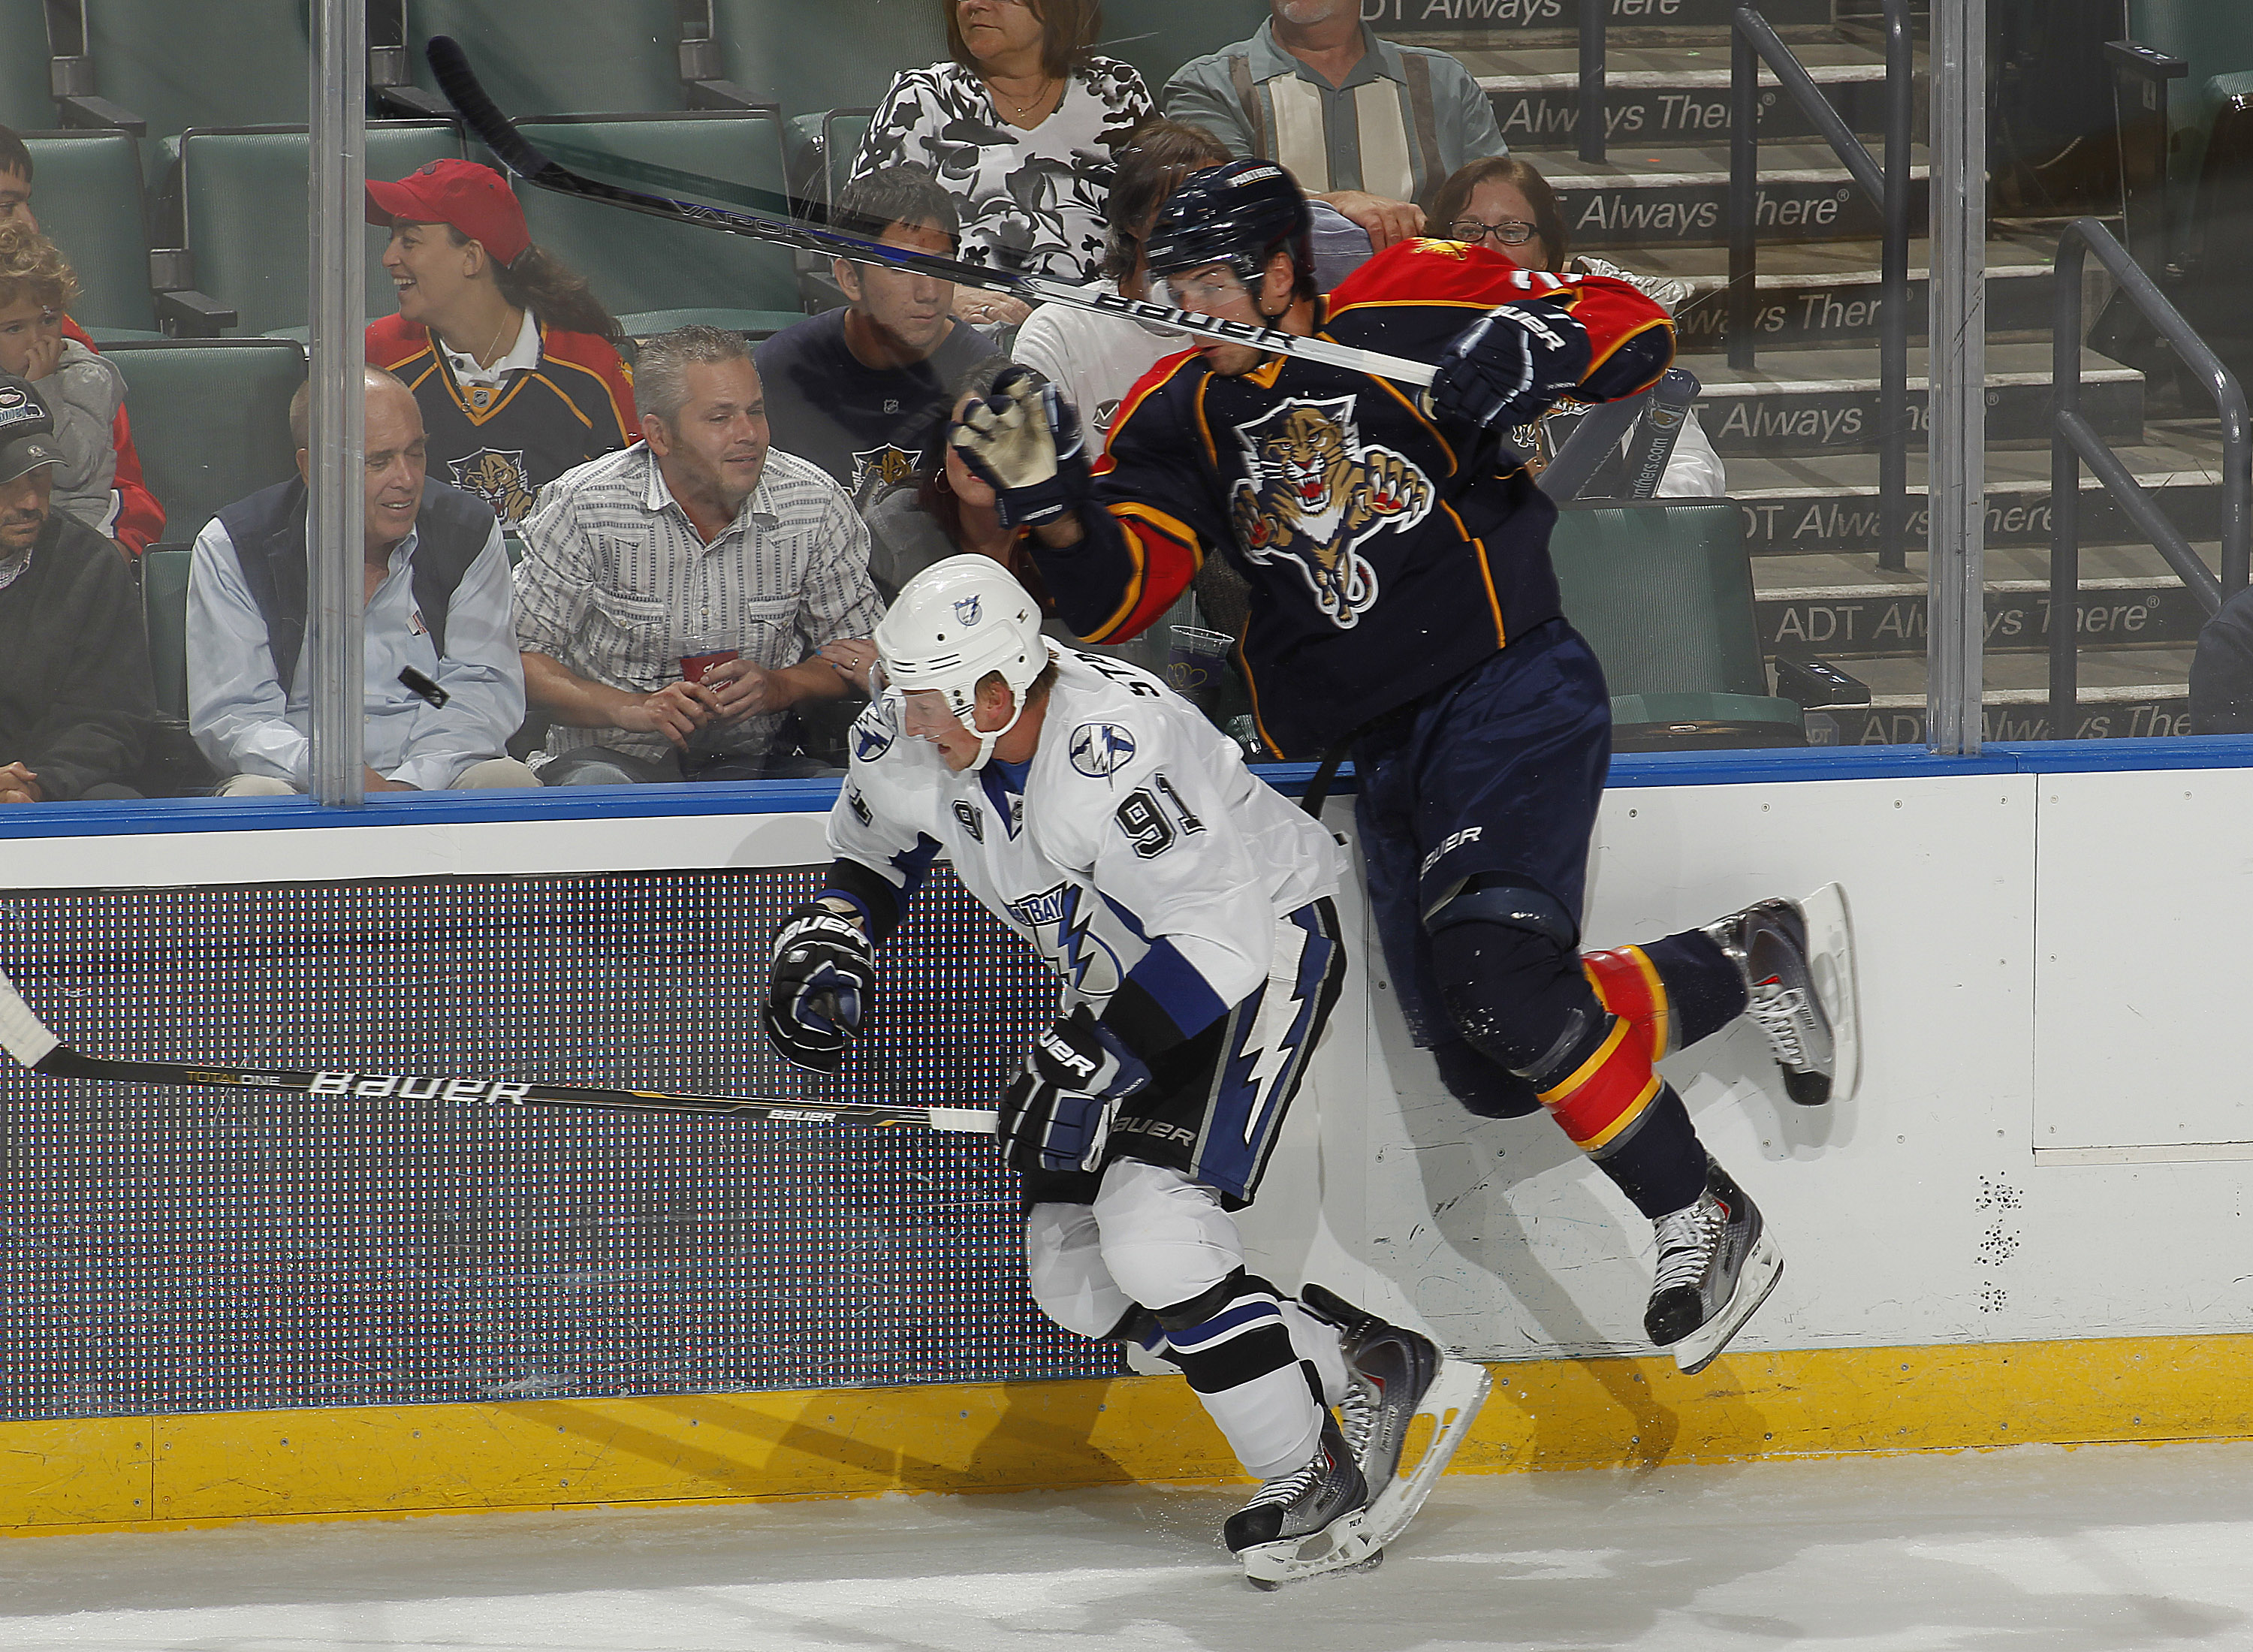 SUNRISE, FL - OCTOBER 1: Steve Bernier #26 of the Florida Panthers attempts to pass Steven Stamkos #91 of the Tampa Bay Lightning while chasing the puck during a pre season game on October 1, 2010 at the BankAtlantic Center in Sunrise, Florida. The Lightn